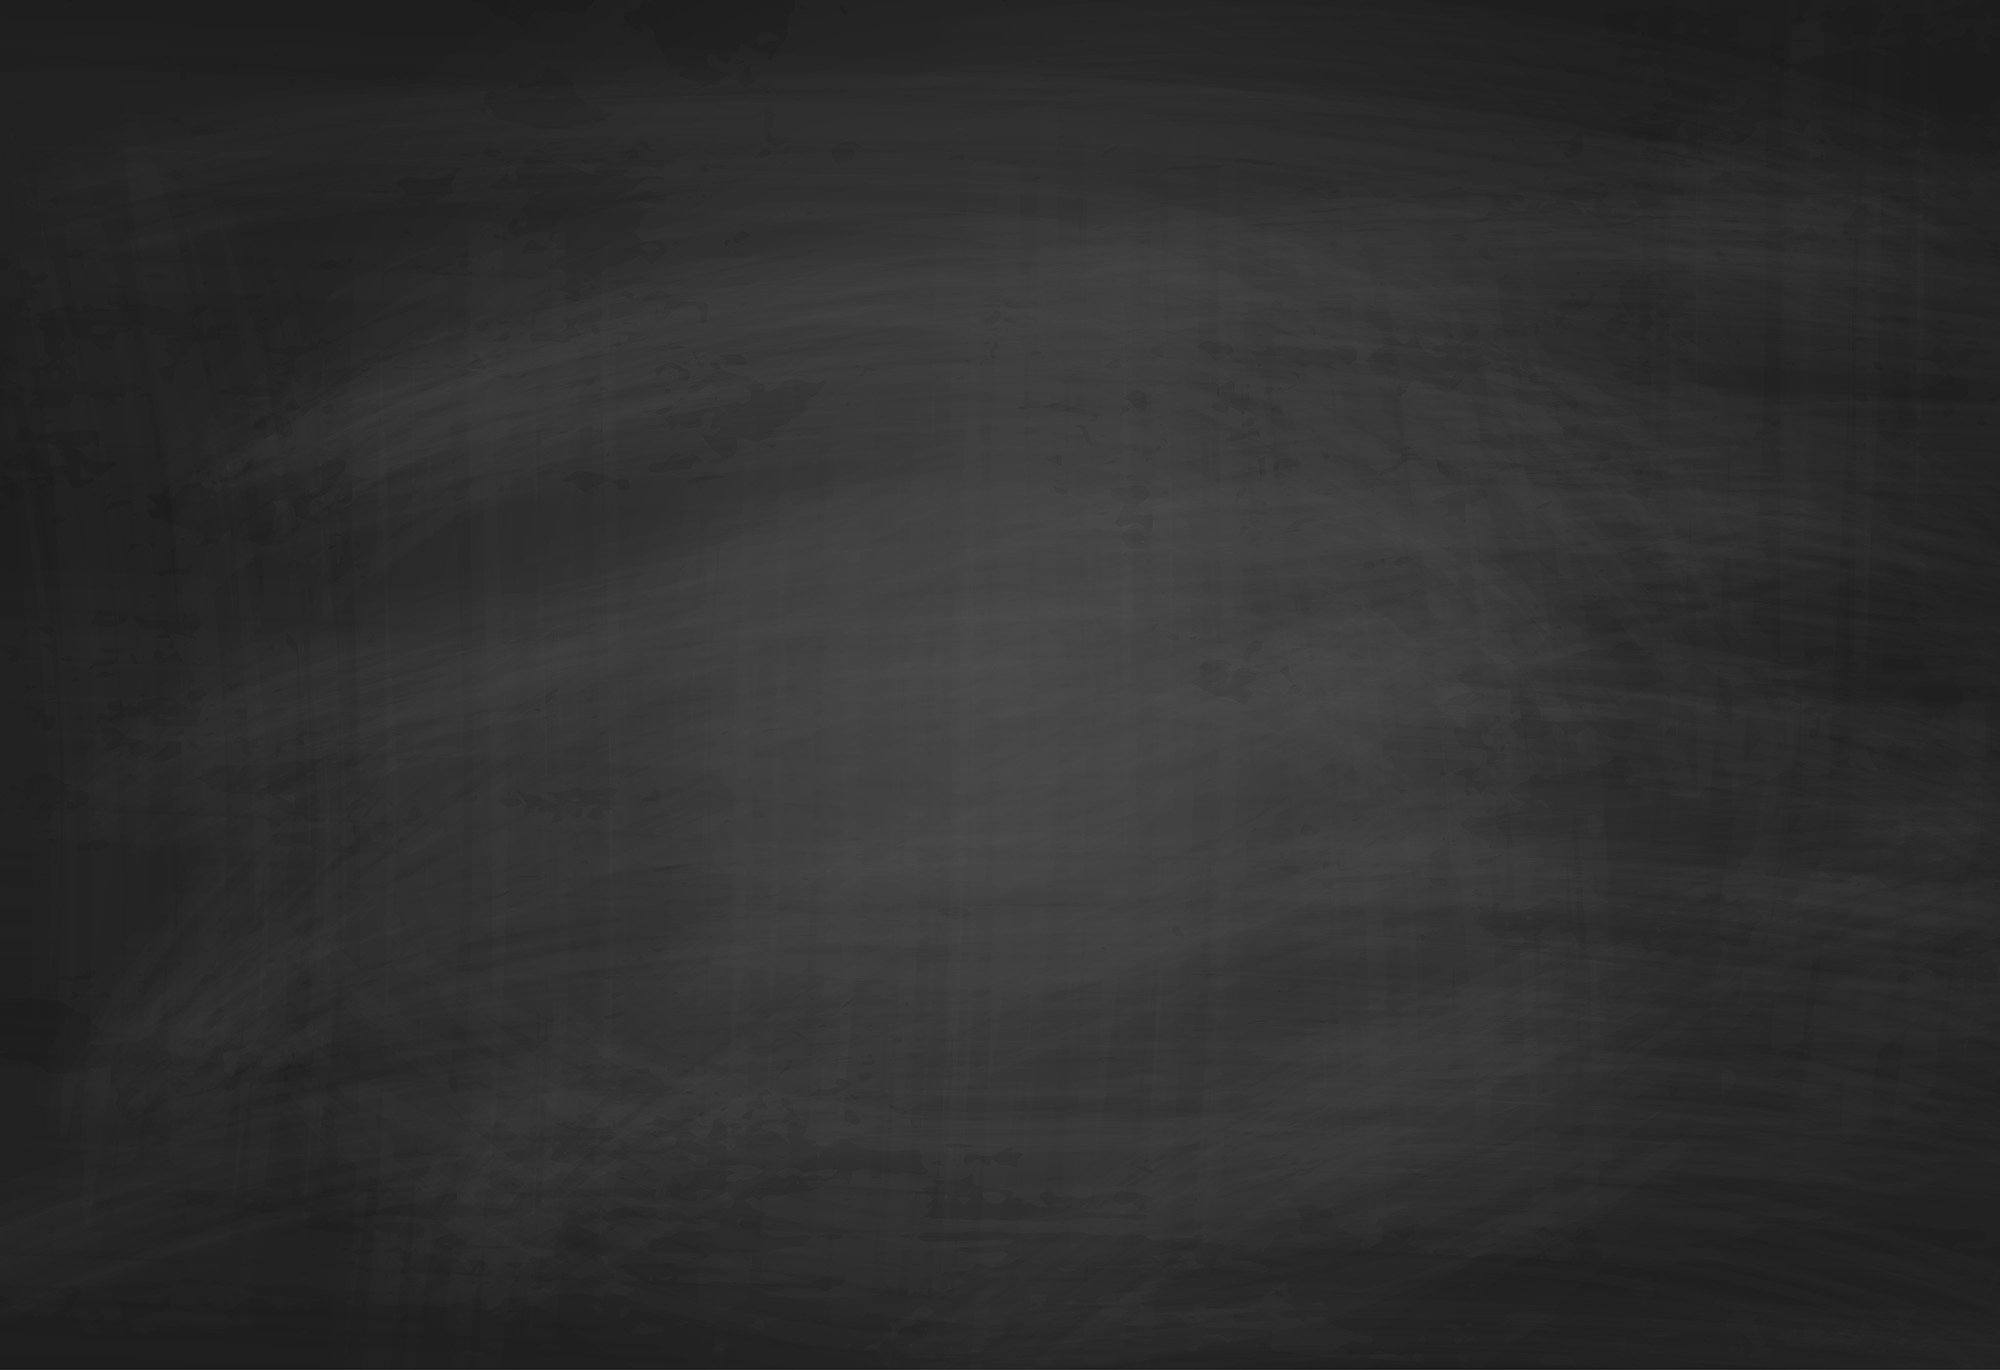 chalkboard black and warm gray texture photography backdrop